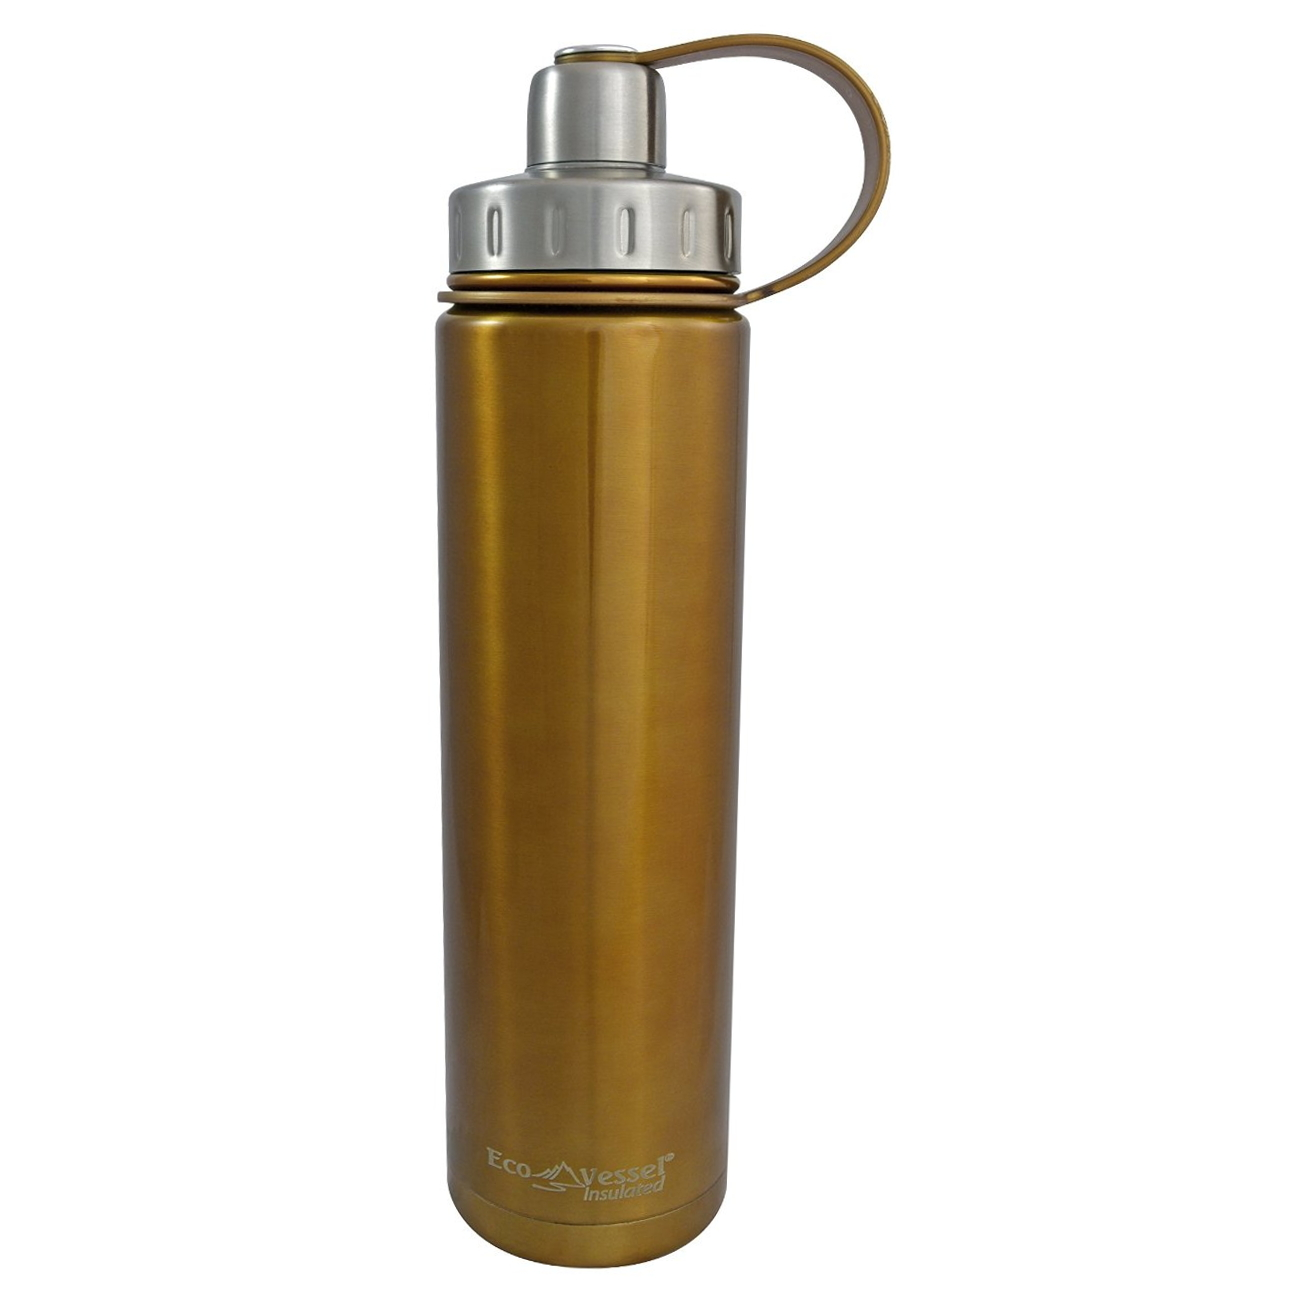 Eco Vessel Boulder TriMax Triple Insulated Golden Glow 24 Ounce Water Bottle with 2-Piece Screw Cap and Strainer